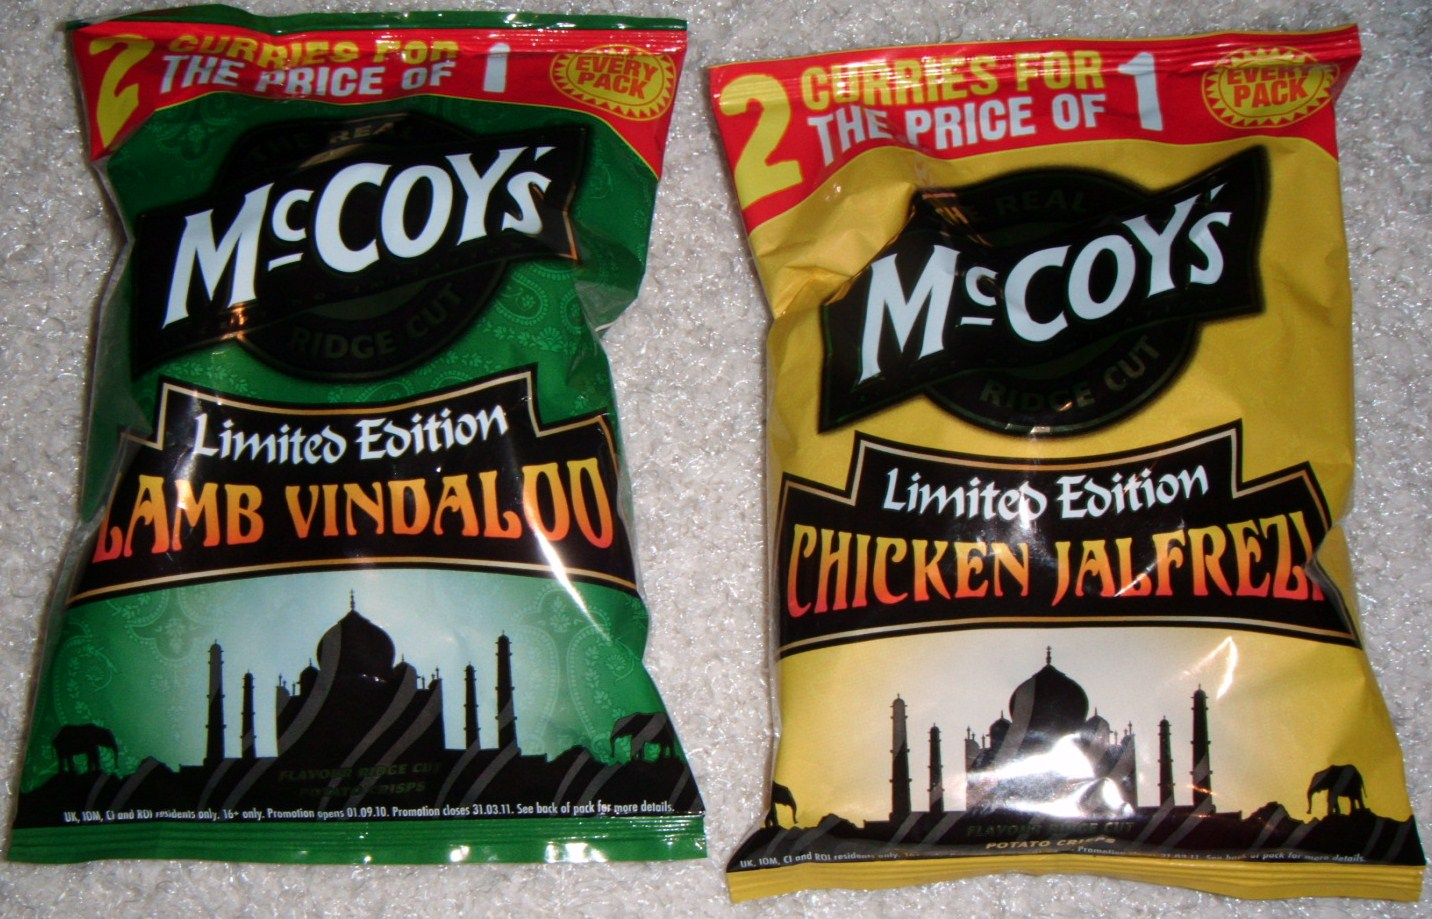 Foodstuff Finds Mccoys Limited Edition Chicken Jalfrezi